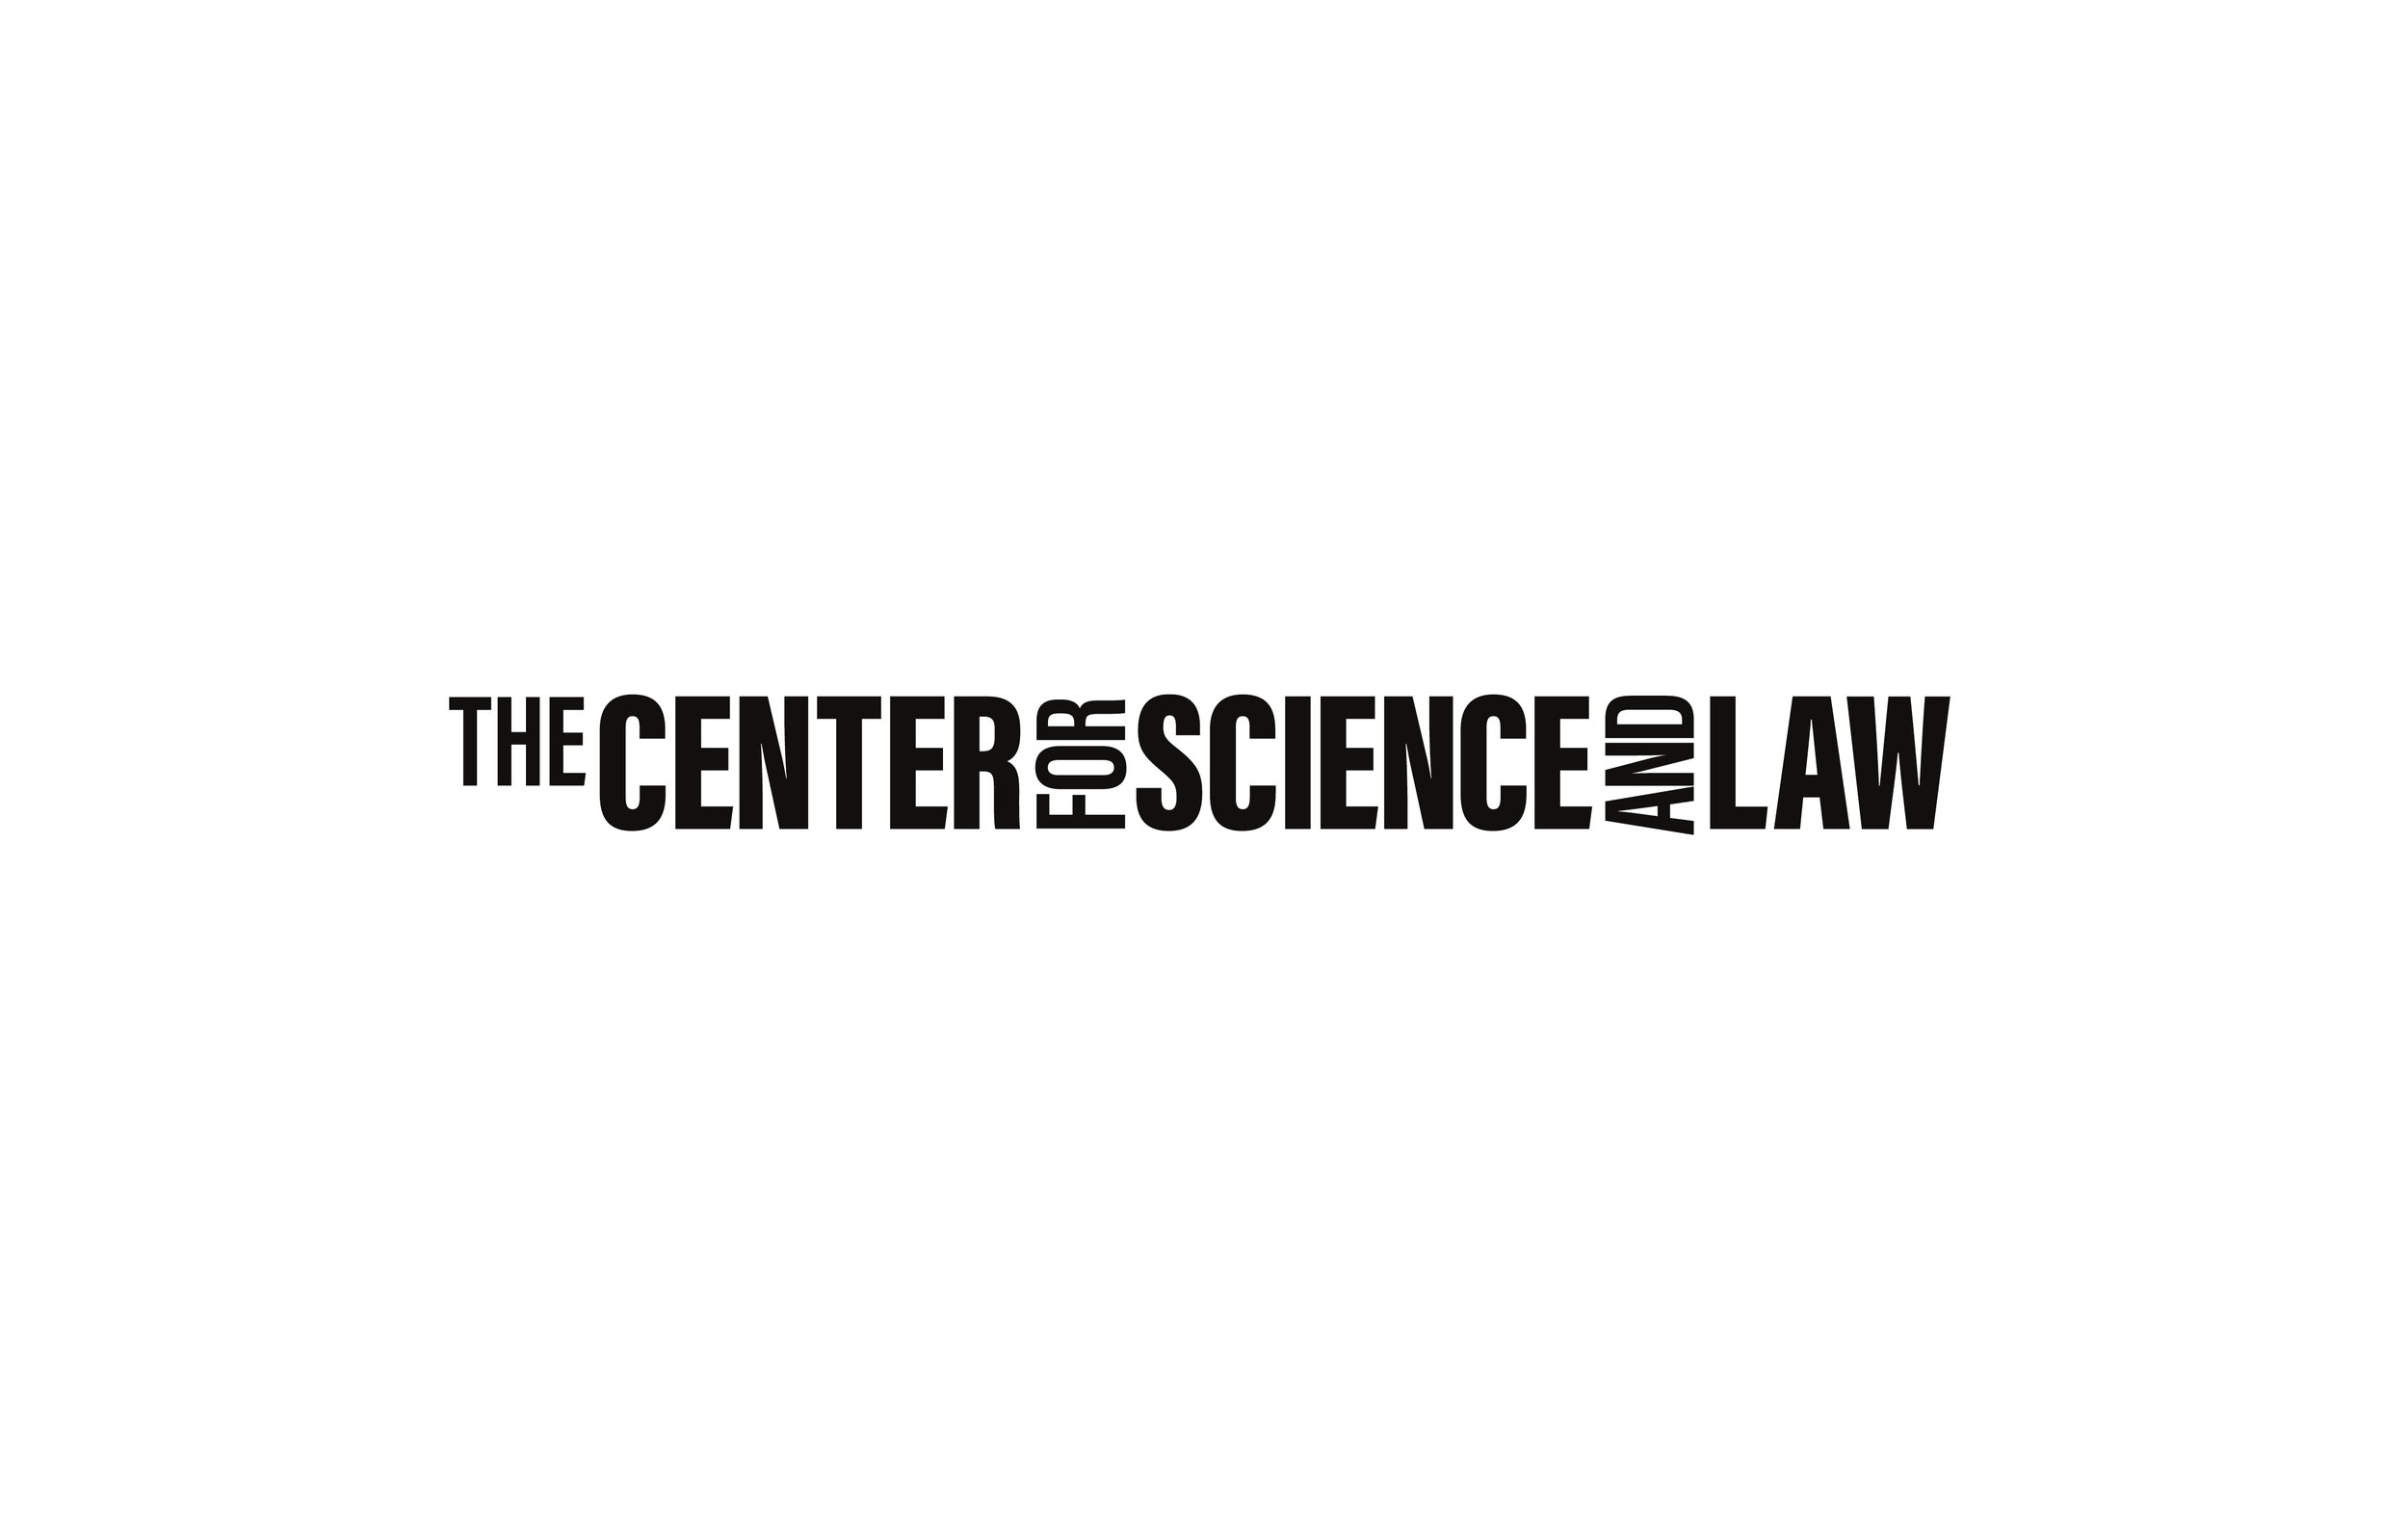 Center for Science and Law Logo for RHI Website2.jpg